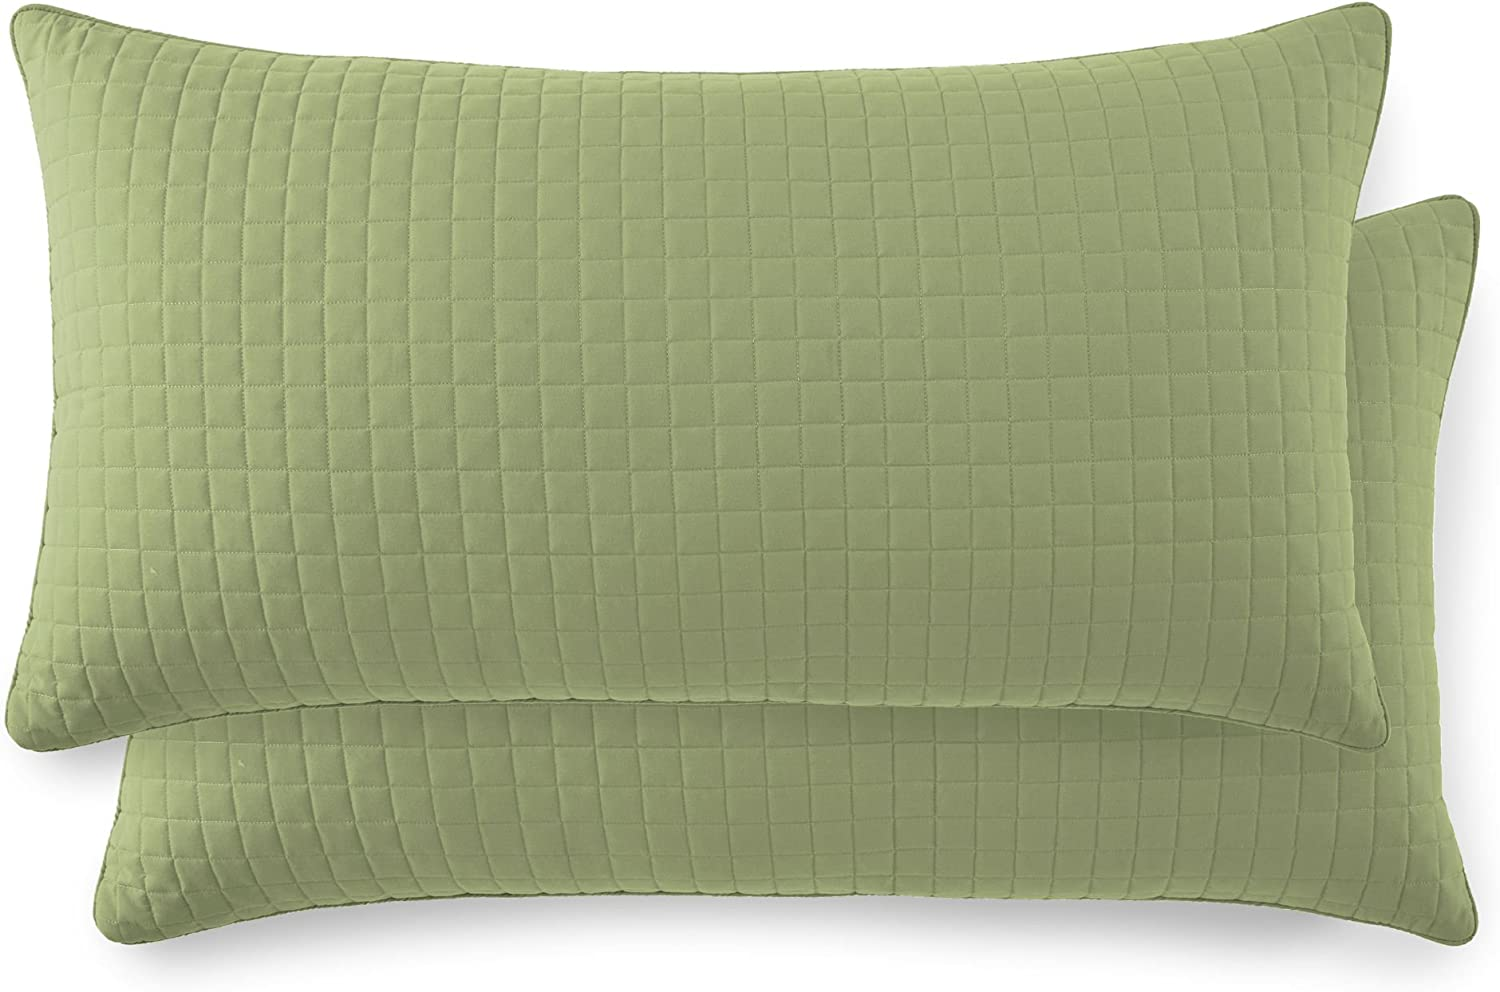 """Southshore Fine Linens - VILANO Springs - Pair of Quilted Pillow Sham Covers (No Inserts), 20"""" x 36"""", Sage Green"""